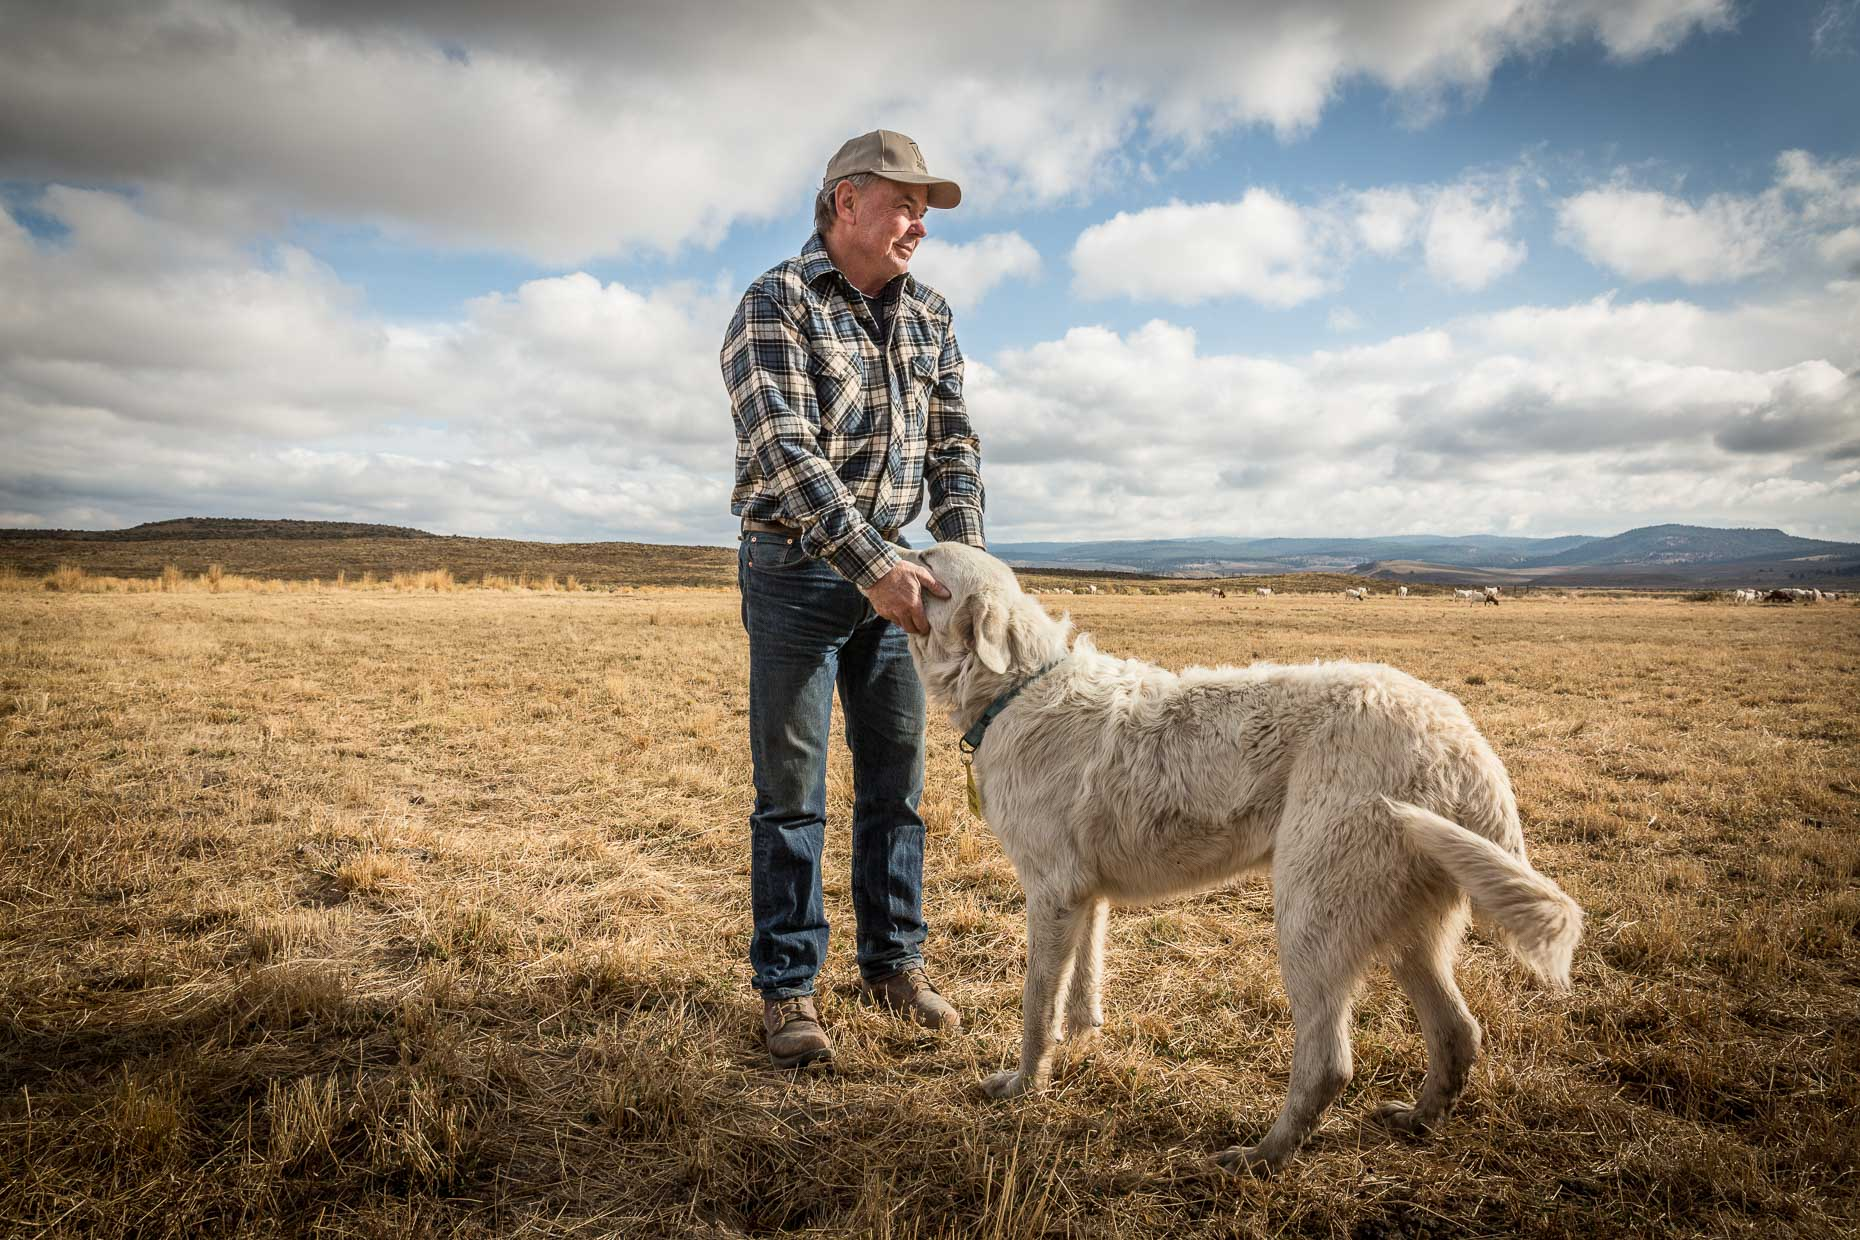 Portrait of man posing with dog (a white Great Pyrenees) standing on field at ranch. Silvies Valley Ranch, Seneca, Oregon by David Zaitz